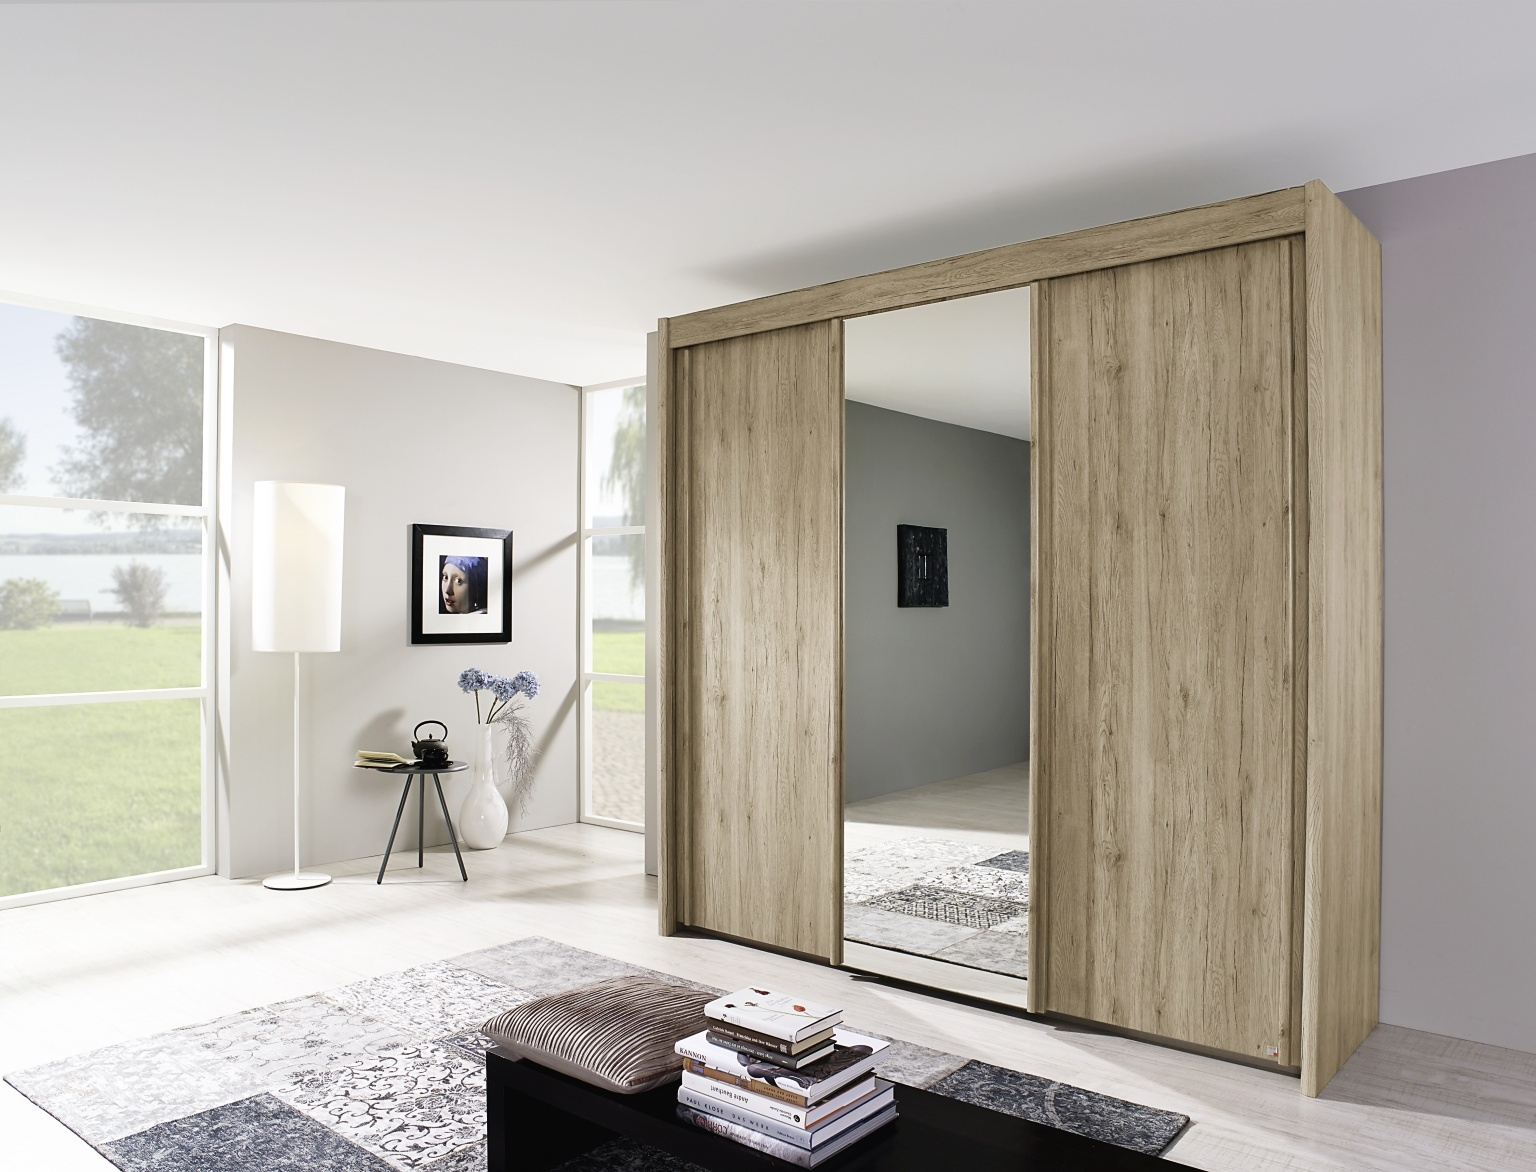 Rauch Imperial Sanremo Light Oak 2 Door Sliding Wardrobe with 1 Mirror W 151cm